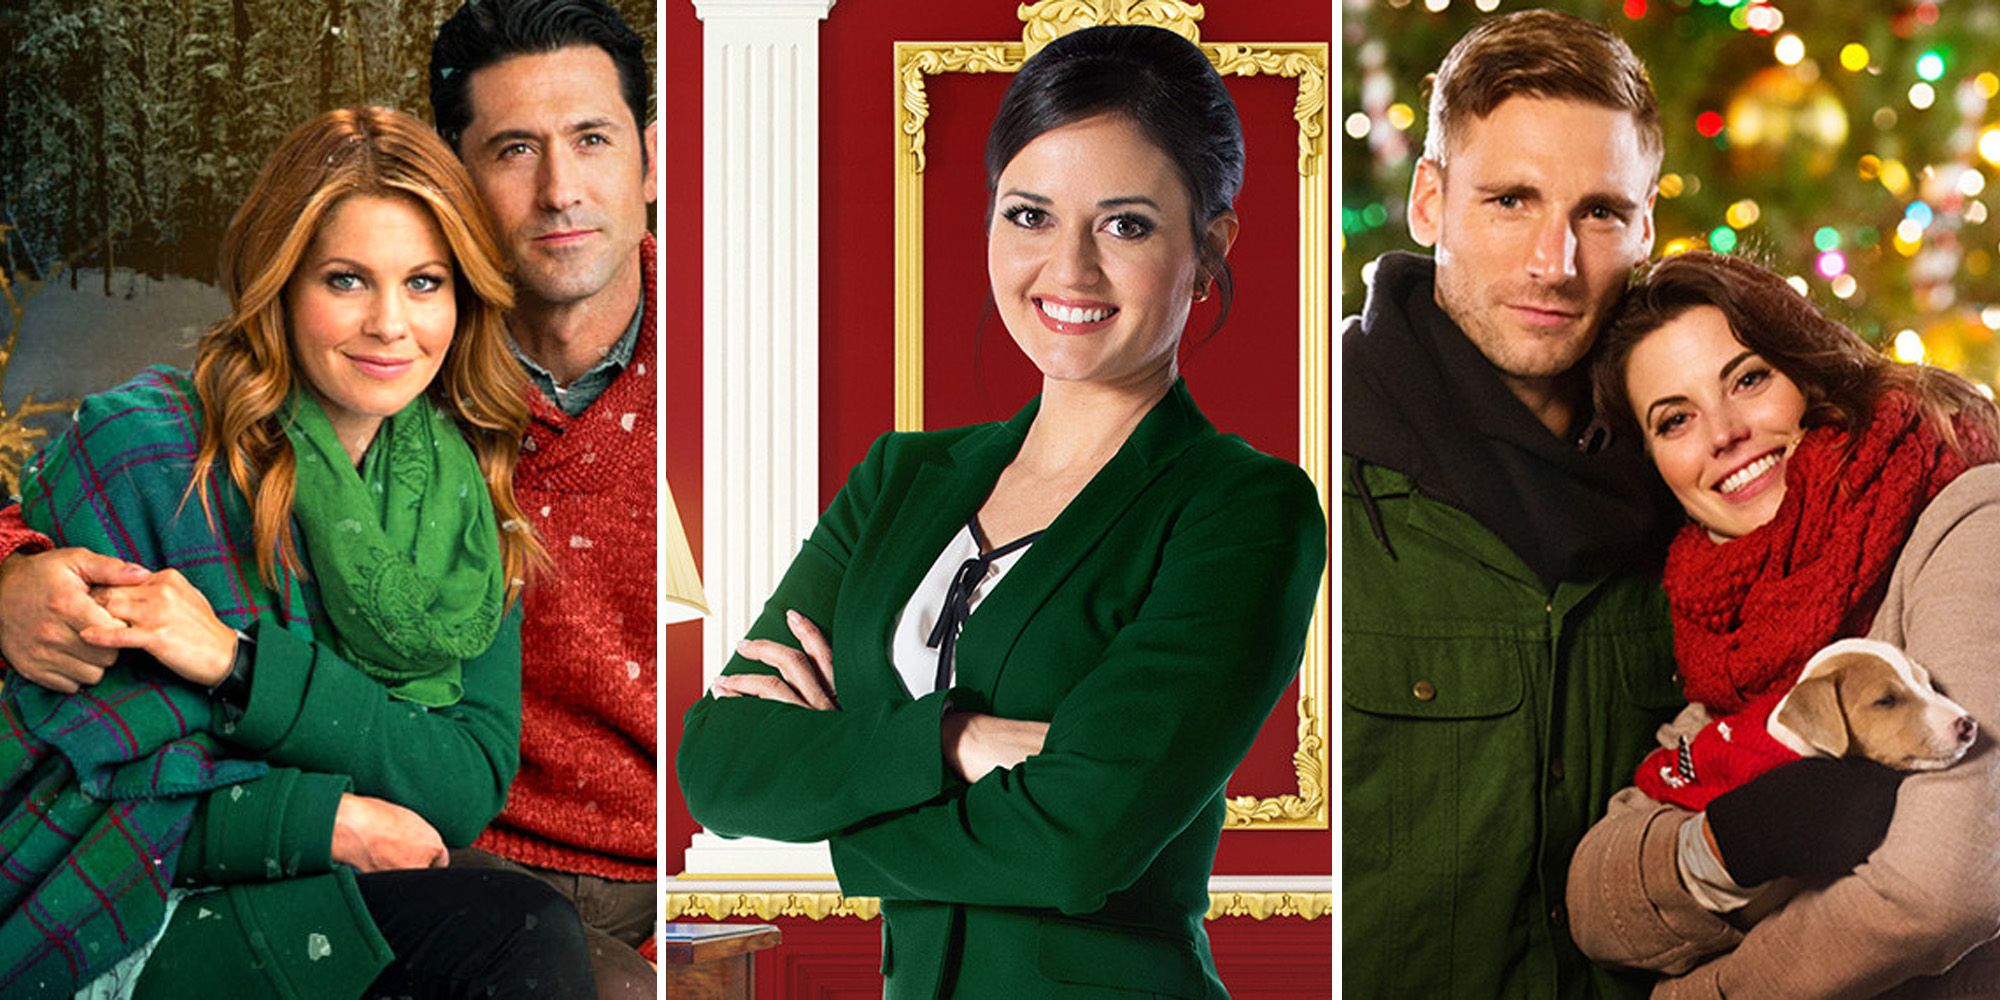 10 Best Hallmark Christmas Movies - In Defense of Cheesy Holiday Movies